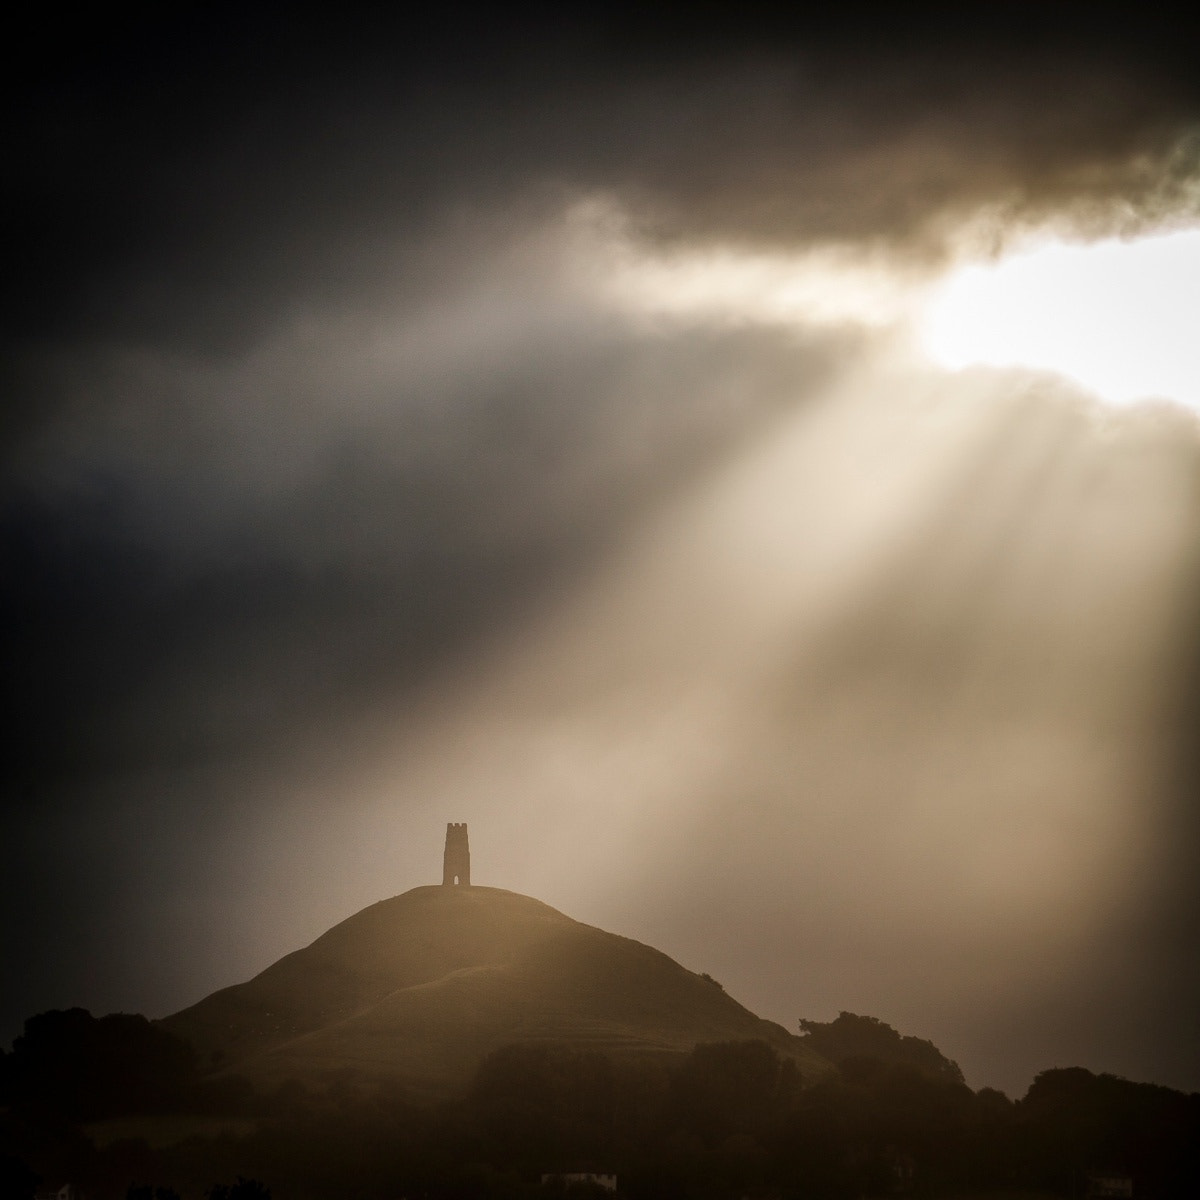 Photograph Glastonbury tor #4 by Terry Gibbins on 500px